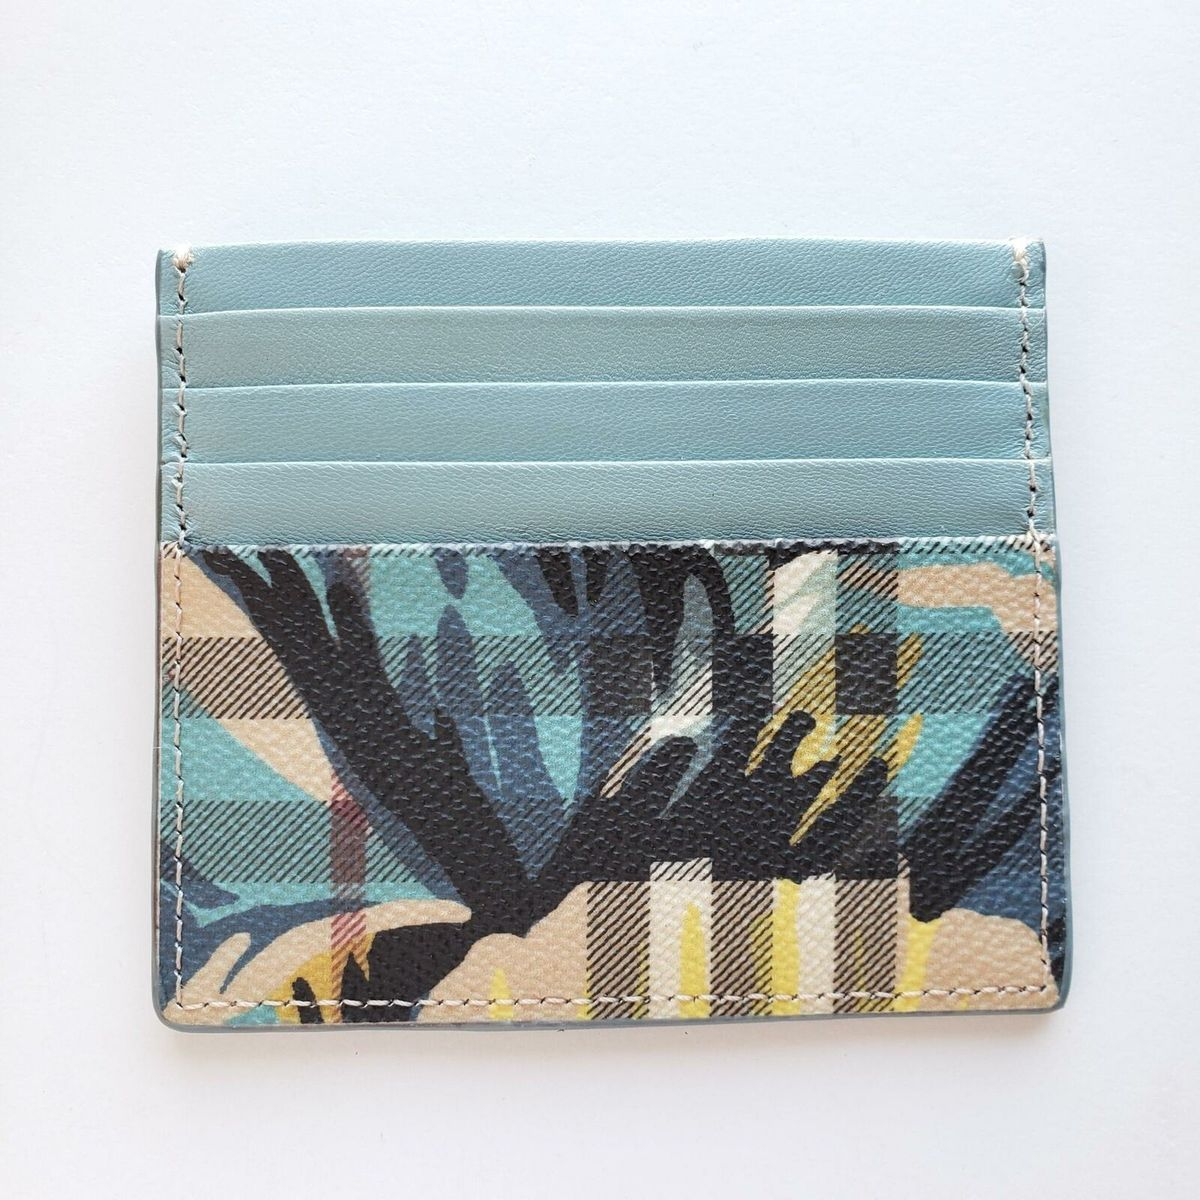 Burberry バーバリー フラワー チェックレザー ツートン カードケース 財布 ベージュ Flower Check Leather Two-Tone Card Case Wallet Beige